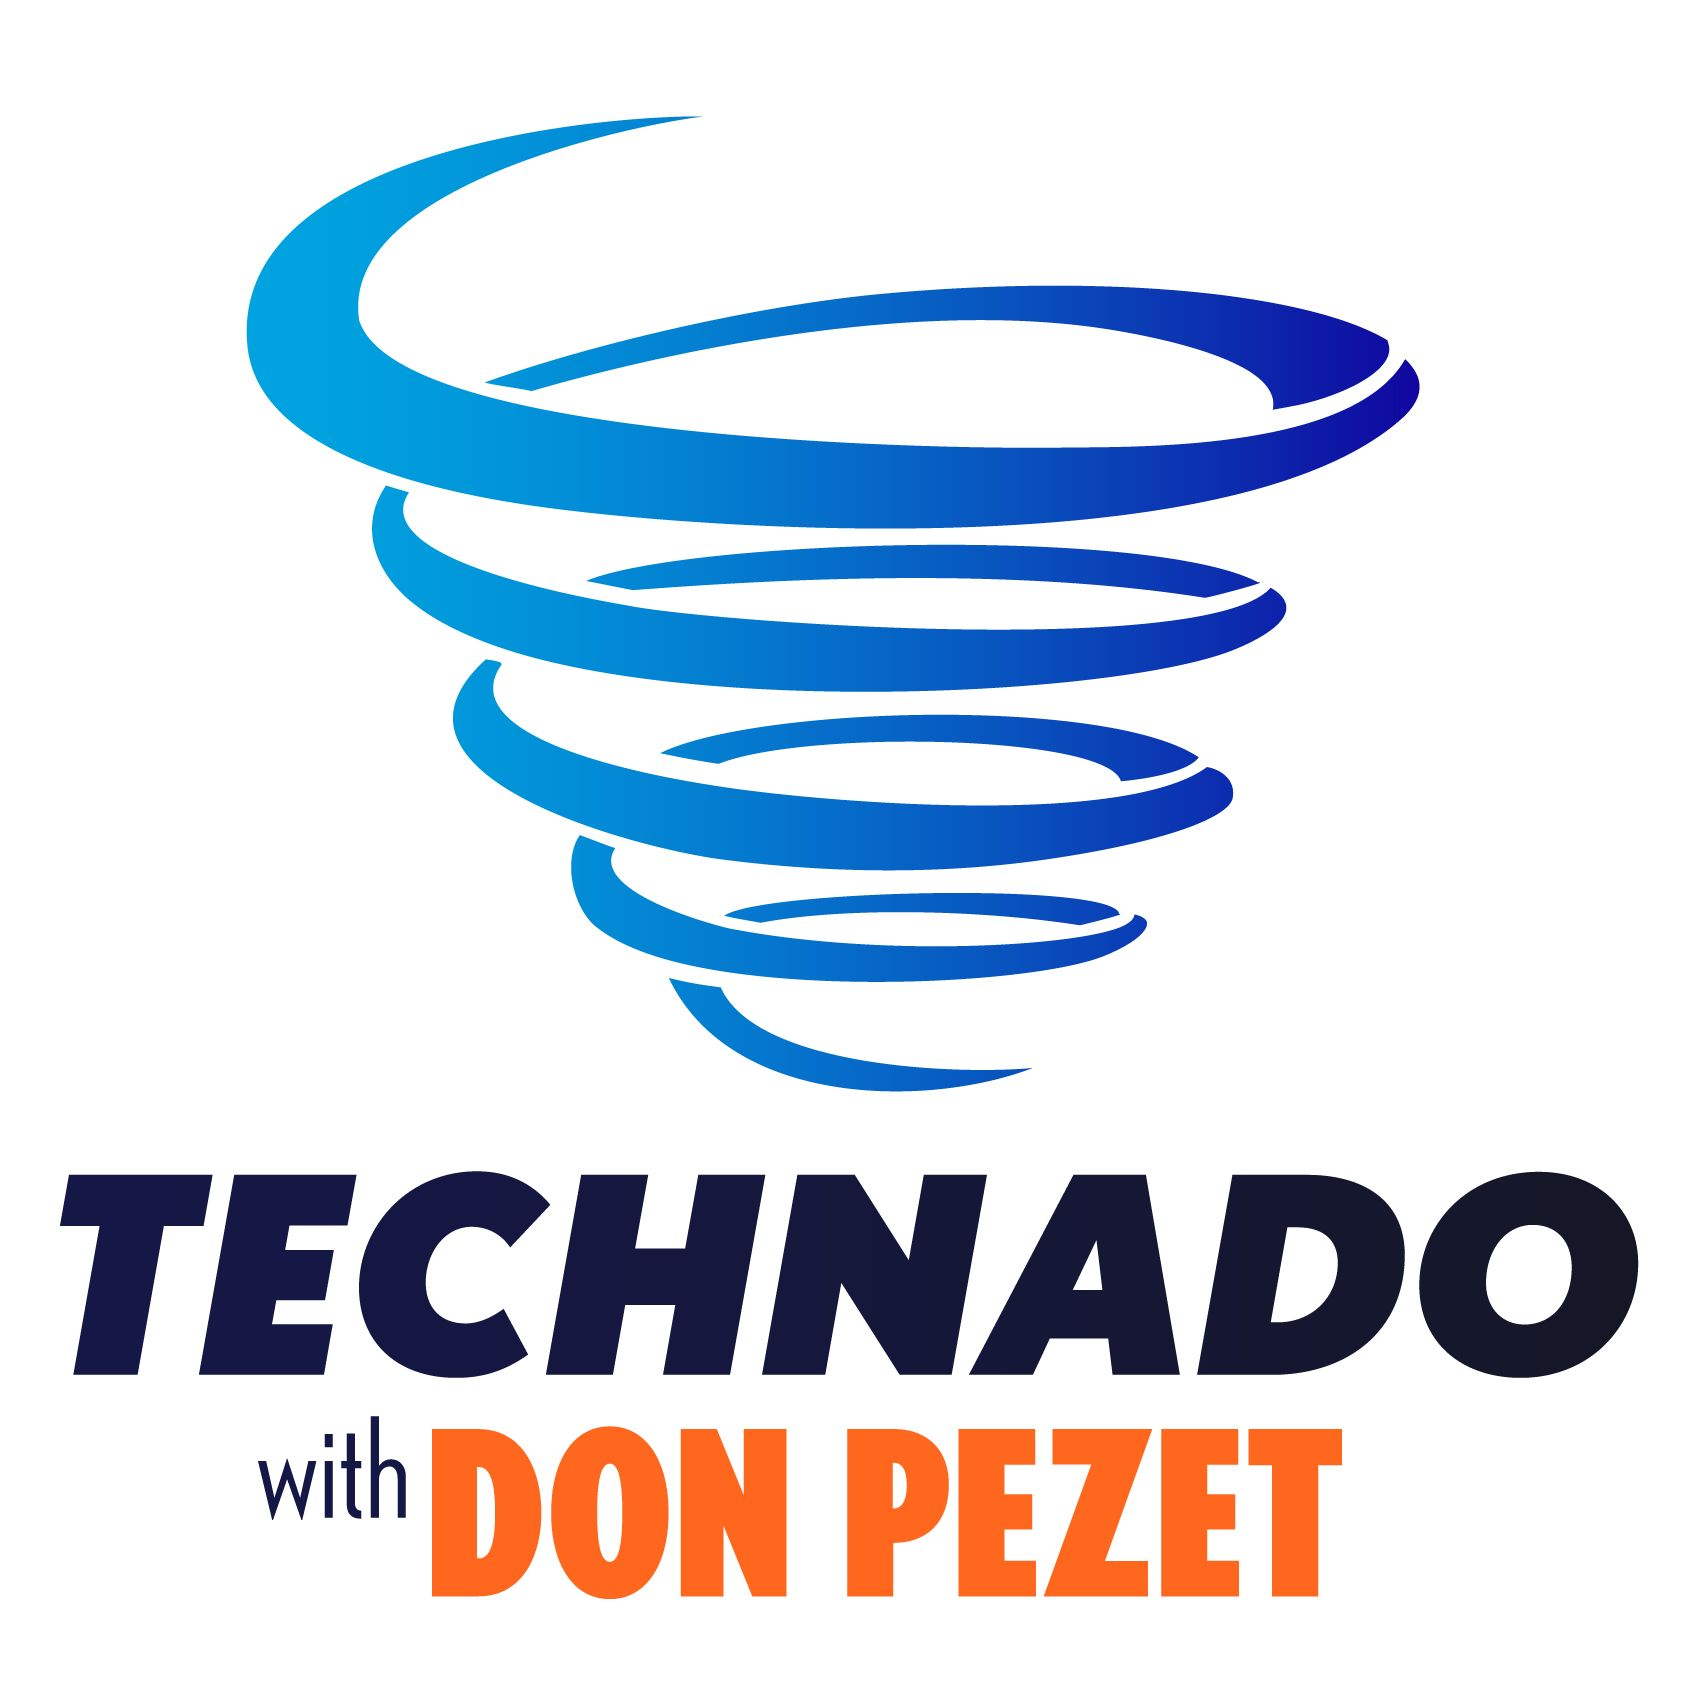 Technado with Don Pezet (Audio)